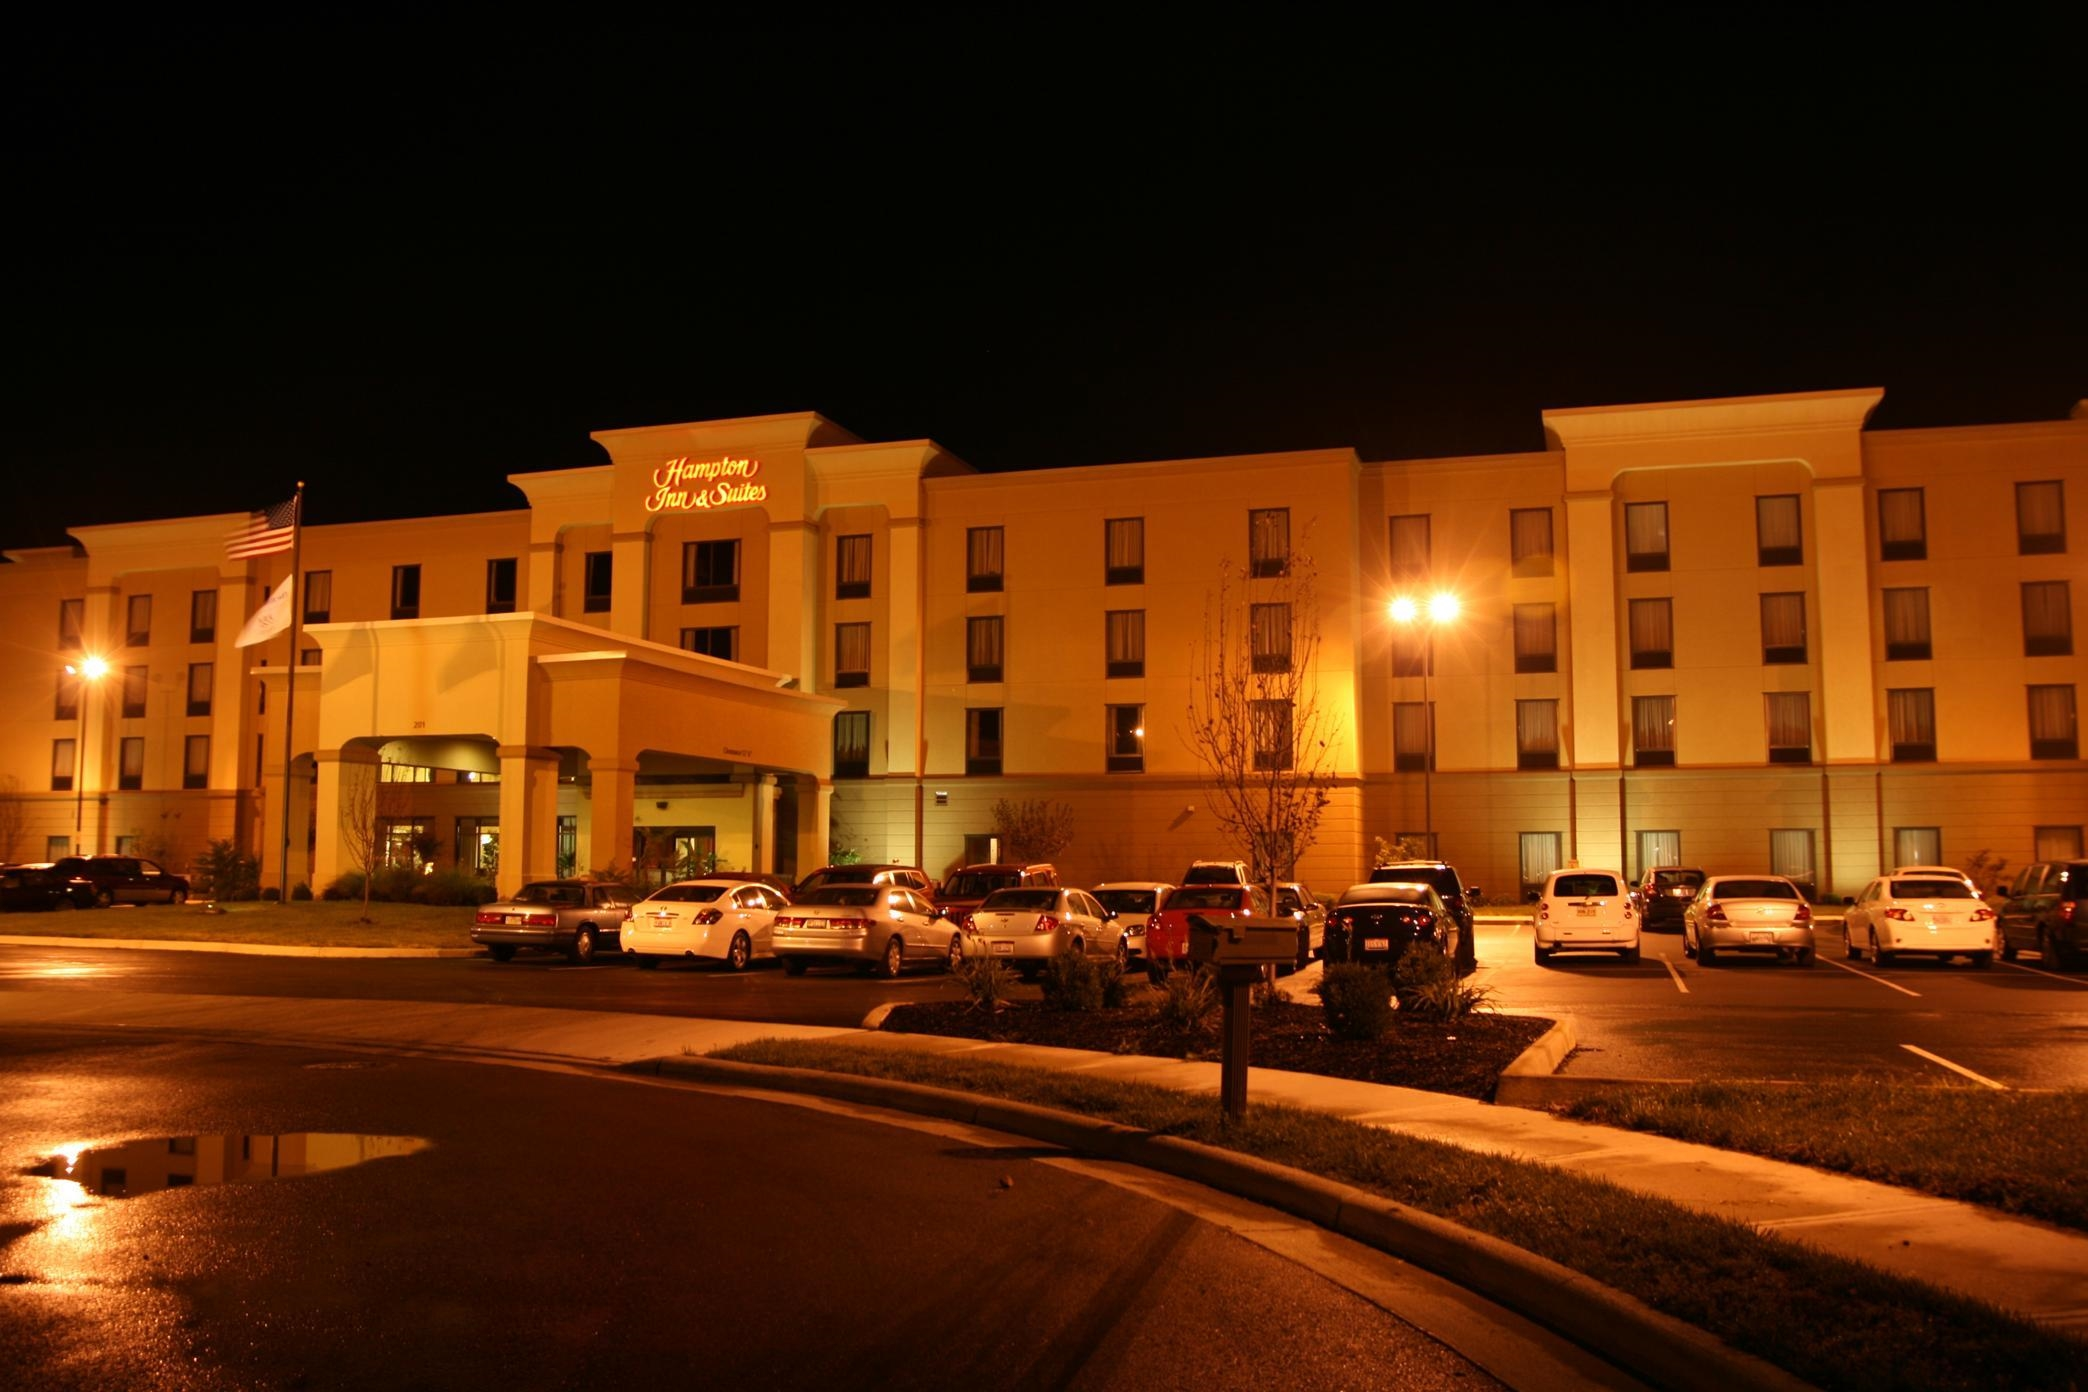 Hampton Inn & Suites Wilmington image 23